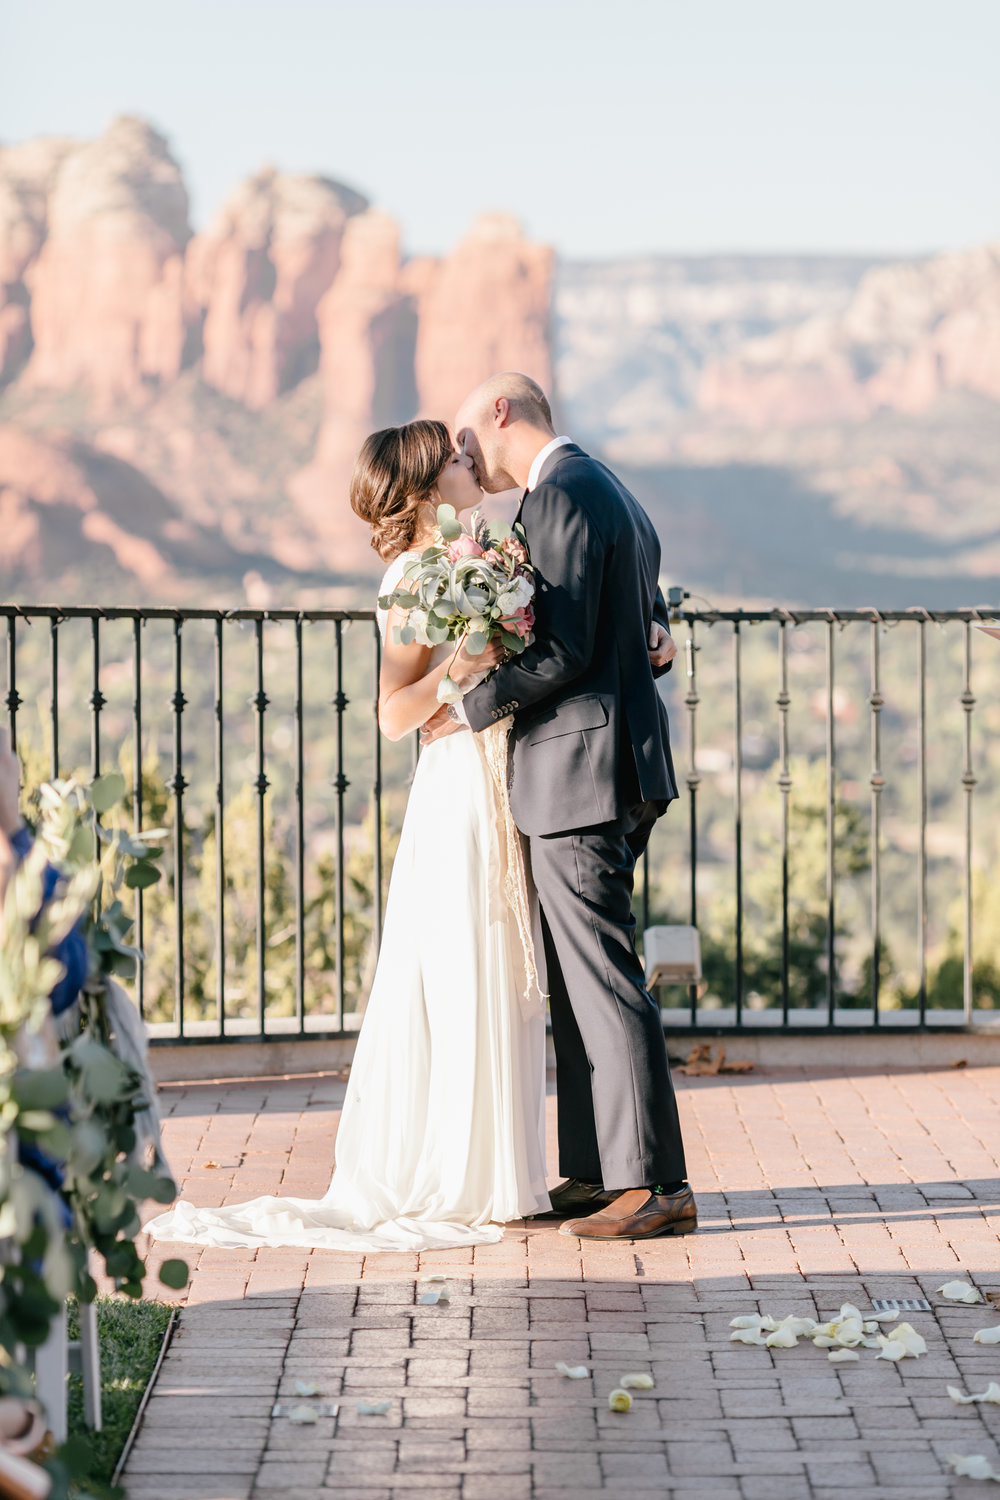 An Intimate Sedona Wedding Nestled in the Arizona Red Rocks  - Tremaine Ranch - AZ Arizona Wedding & Event, Vintage, Furniture, Tableware, & Specialty Rentals in Phoenix, Tucson, Flagstaff, Sedona, Tempe, Chandler, Mesa, Gilbert, Prescott, Payson 5161.jpg